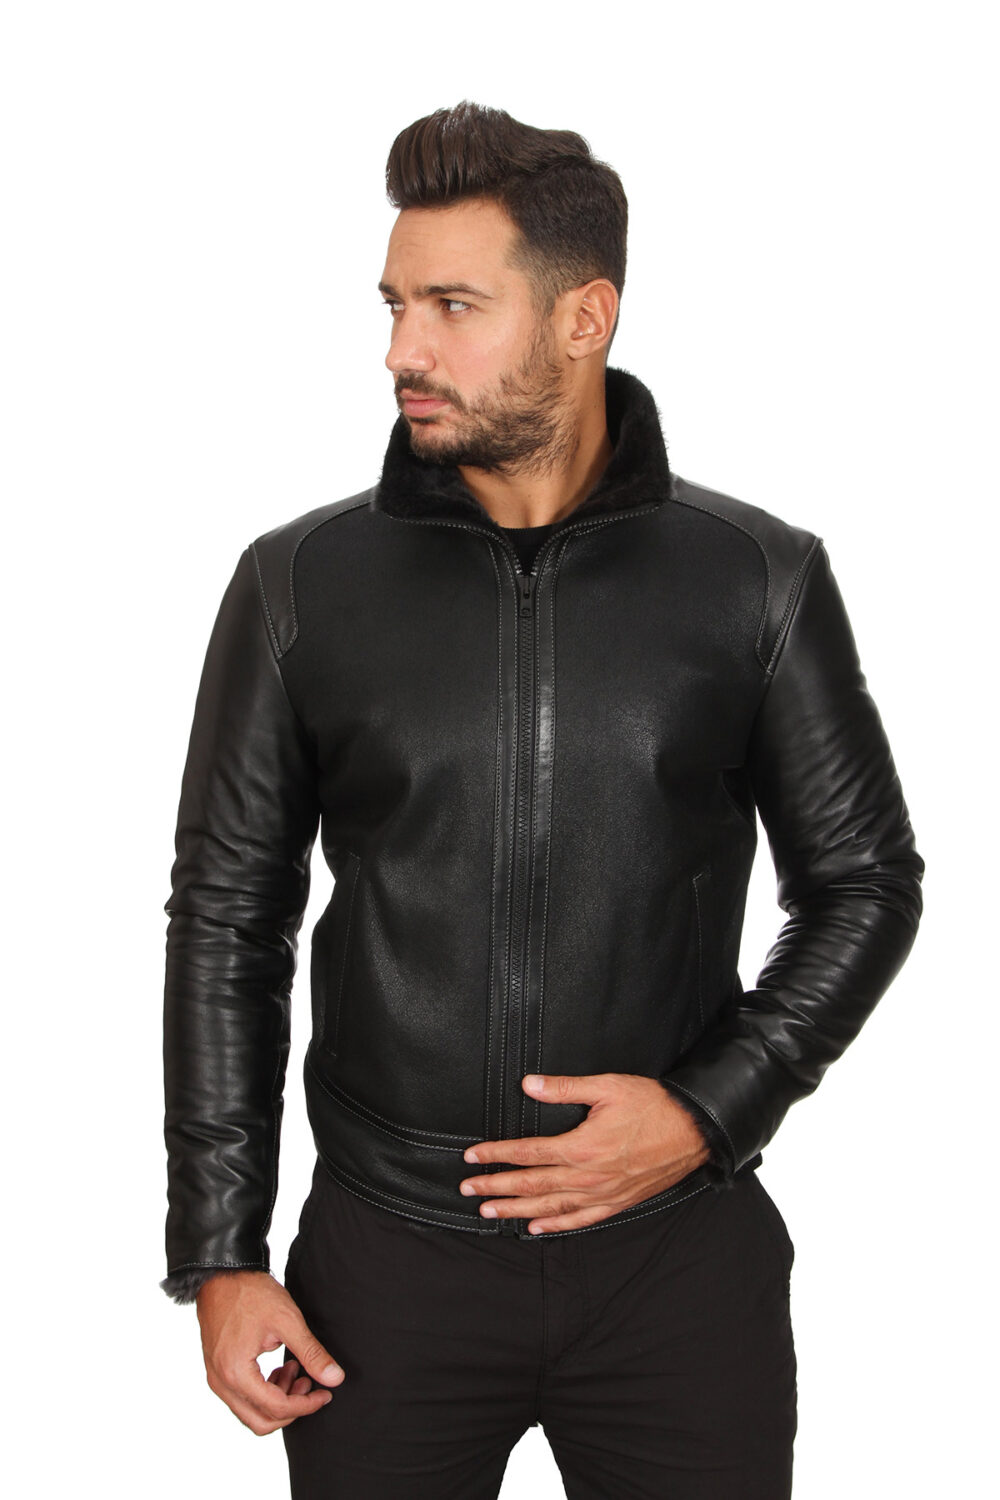 Wlsons Leather Jacket rn69426